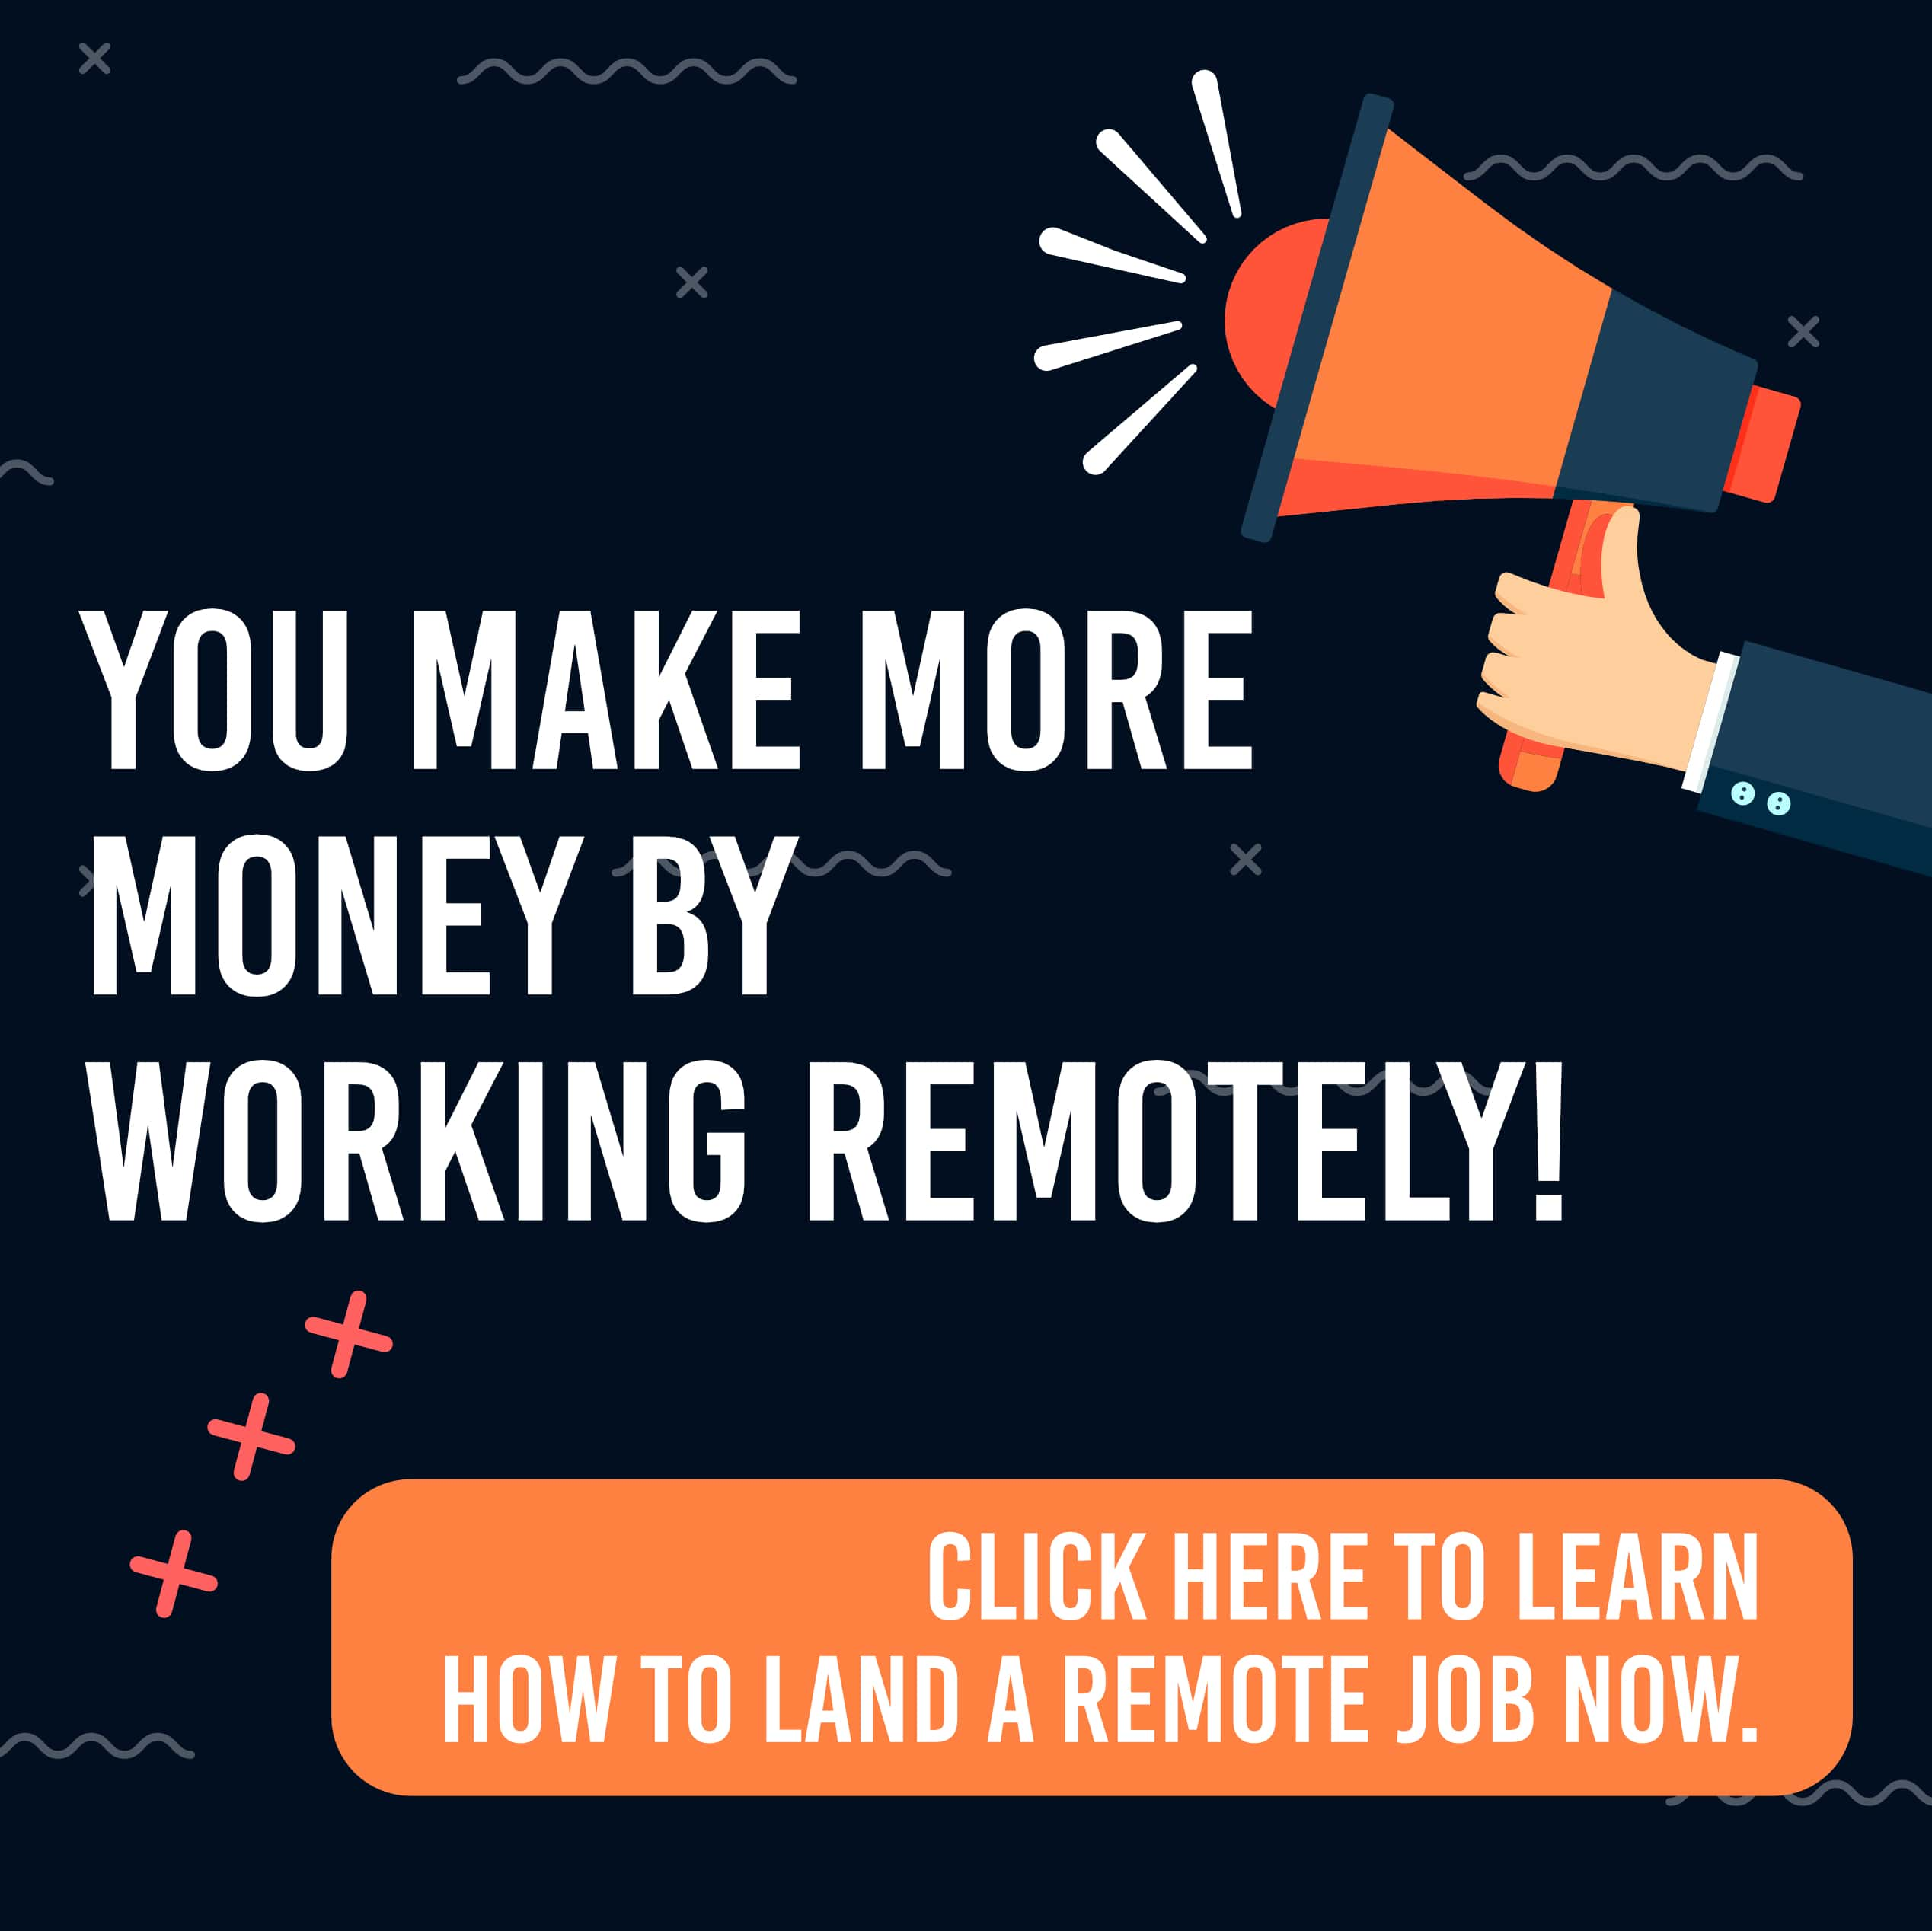 learn how to find legitimate remote jobs